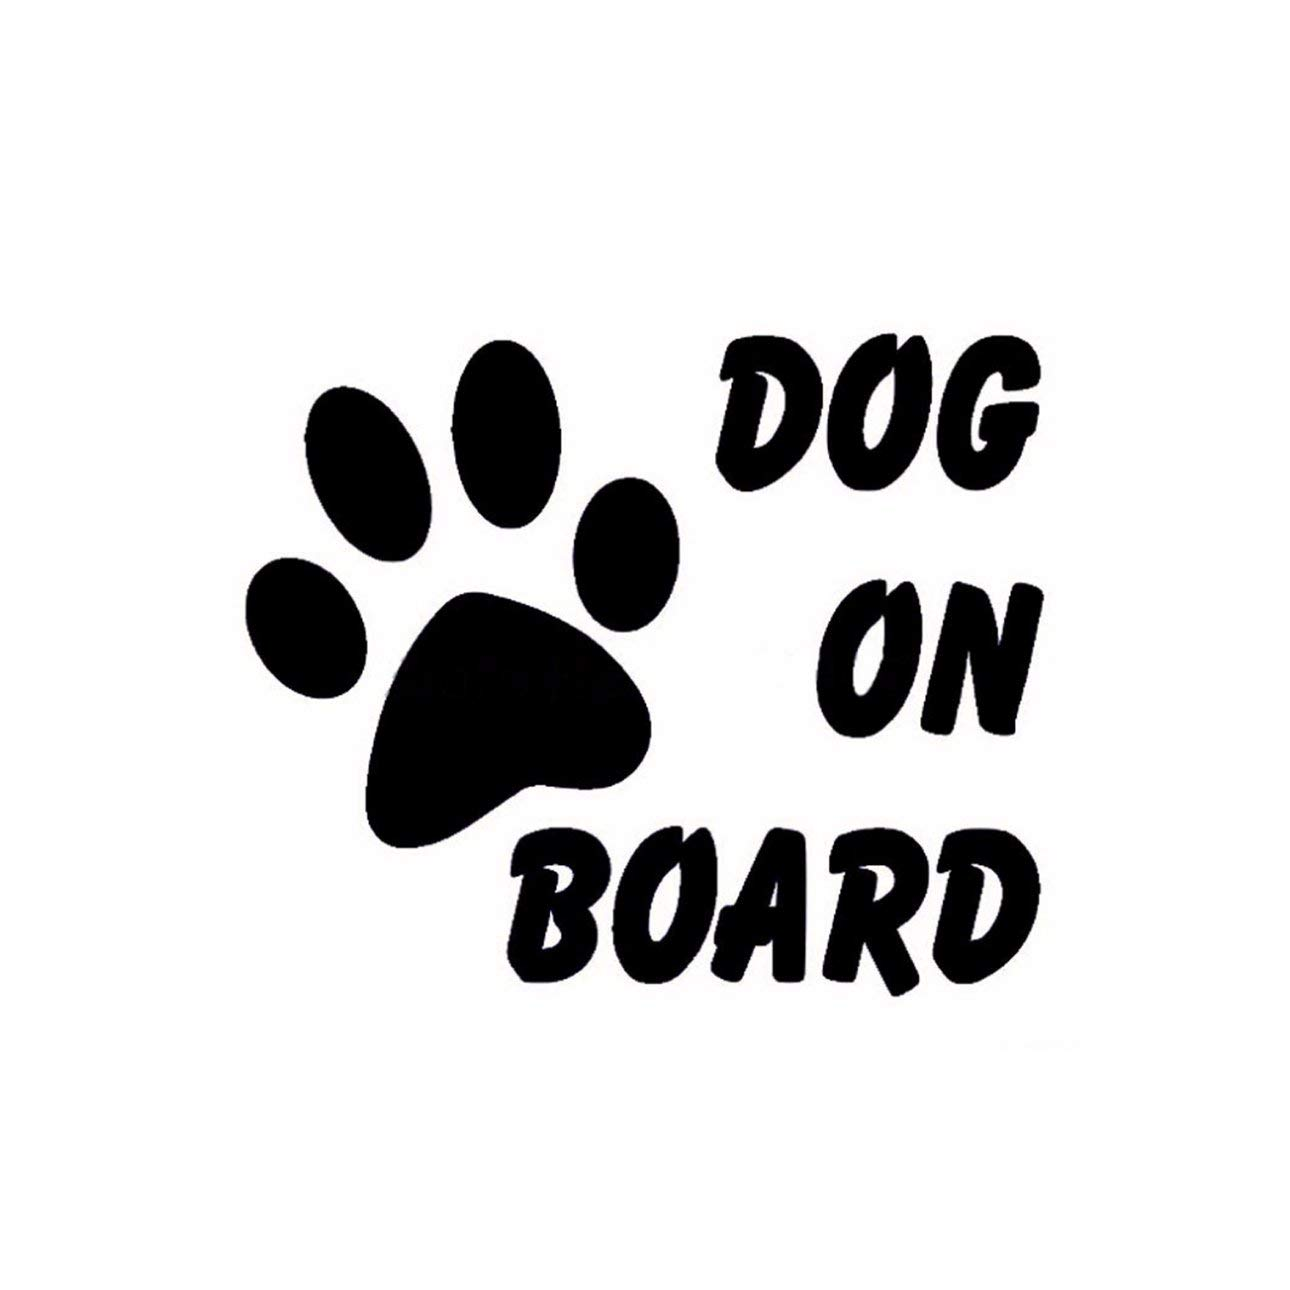 Ballylelly Cute Dog on Board Car Sticker Pet impronta di zampa Puppy adesivi riflettenti